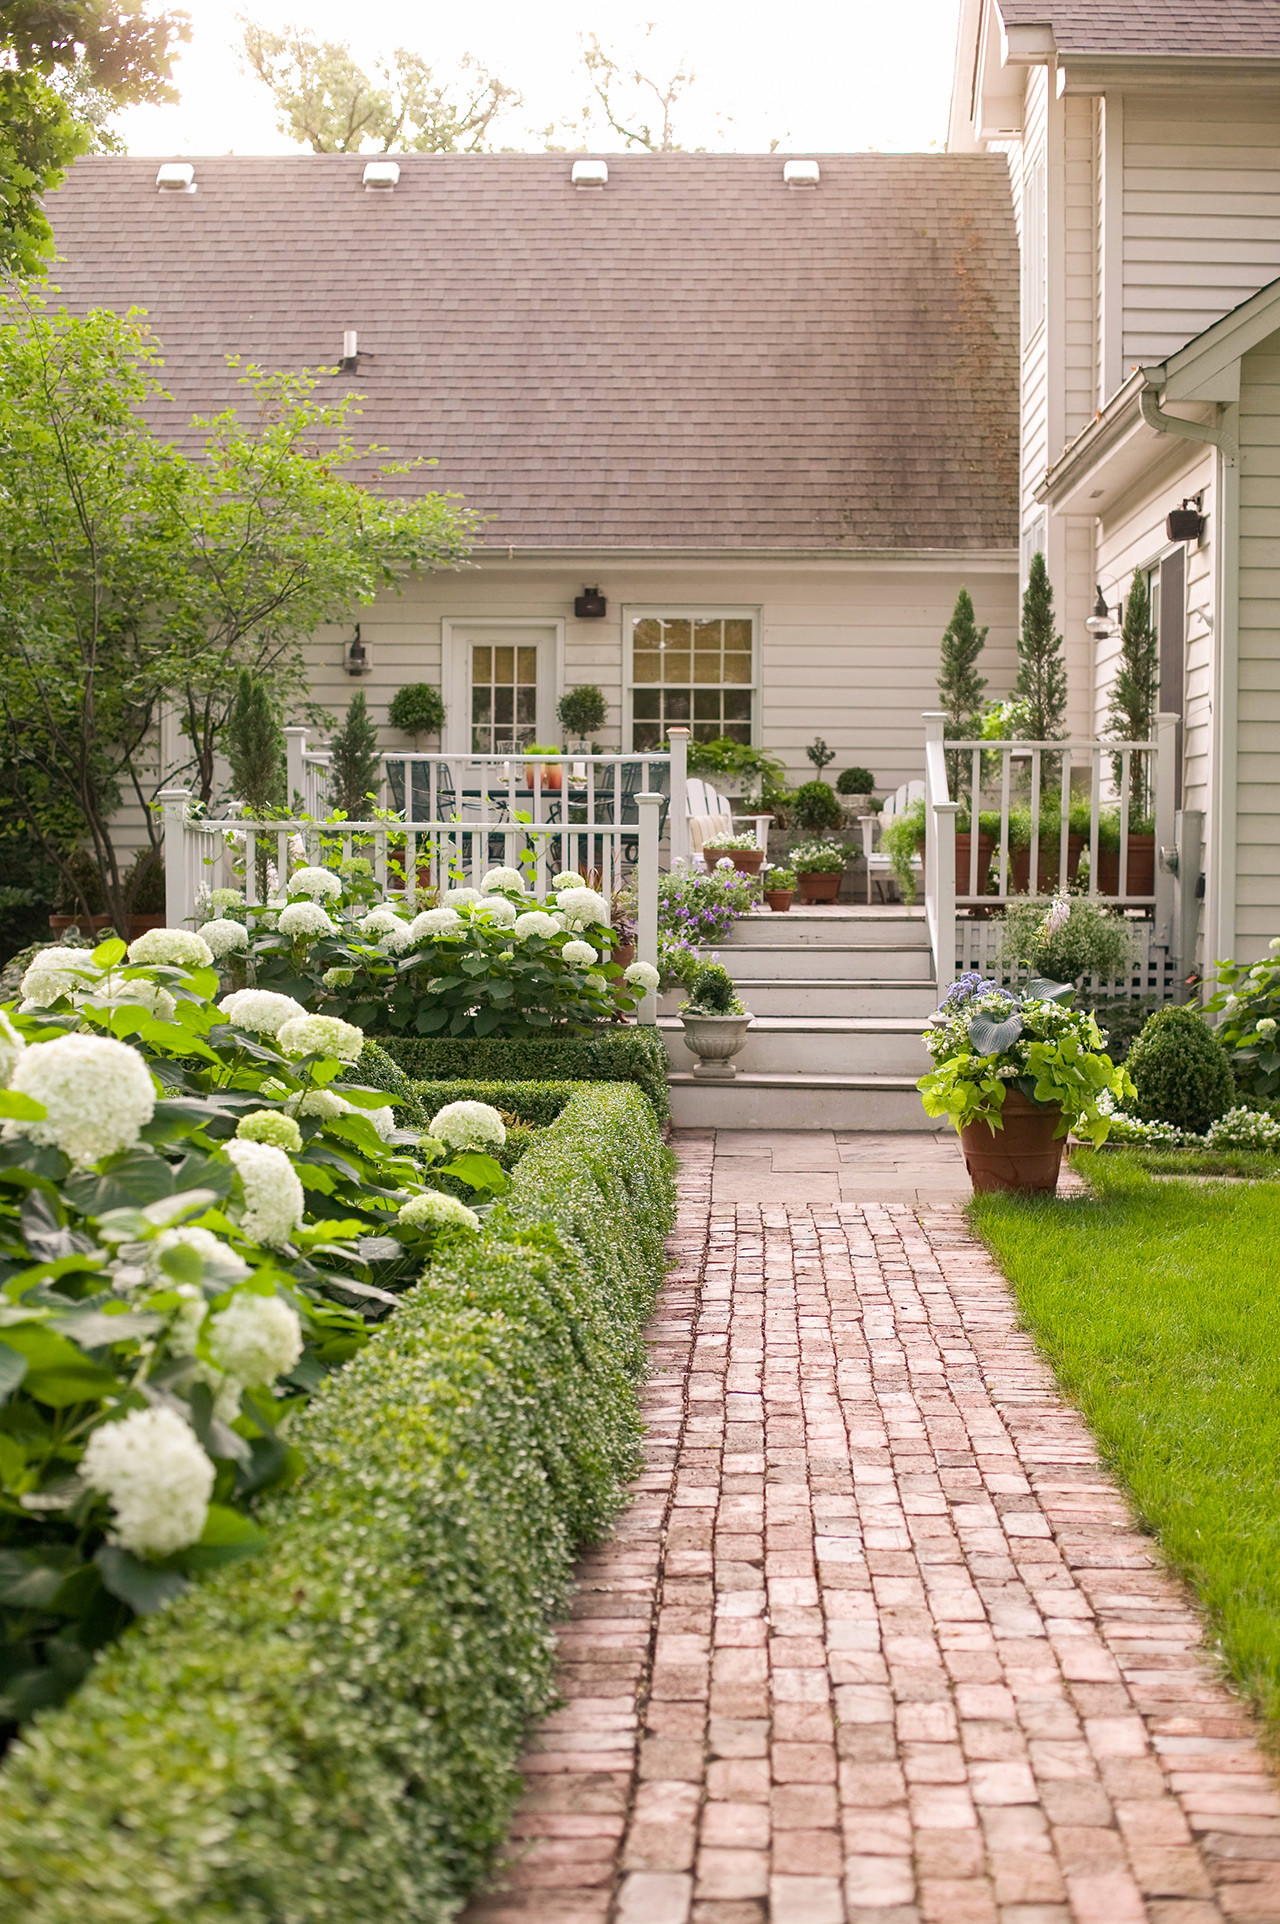 16 Simple Solutions For Small Space Landscapes intended for Ideas For Landscaping Backyard